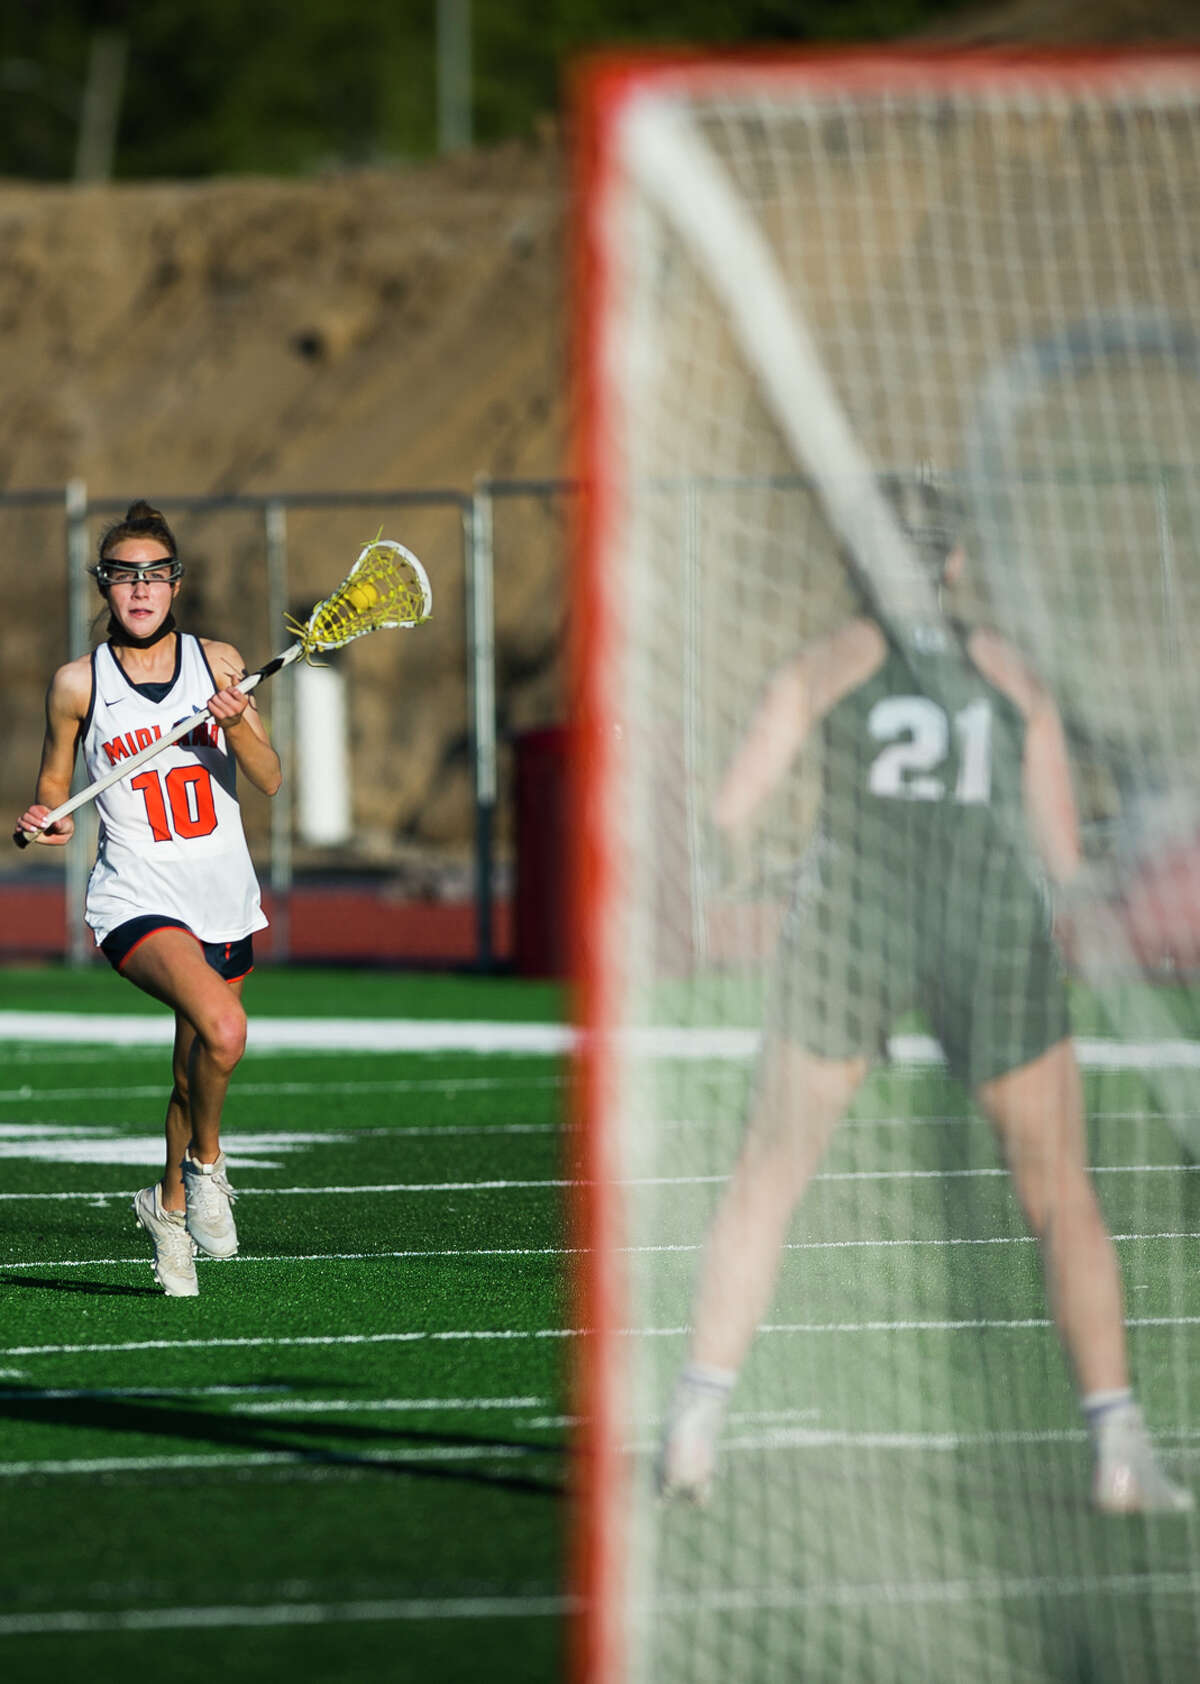 Midland's Emma Murphy moves the ball down the field during a game against Lake Orion Wednesday, May 12, 2021 at Midland Community Stadium. (Katy Kildee/kkildee@mdn.net)